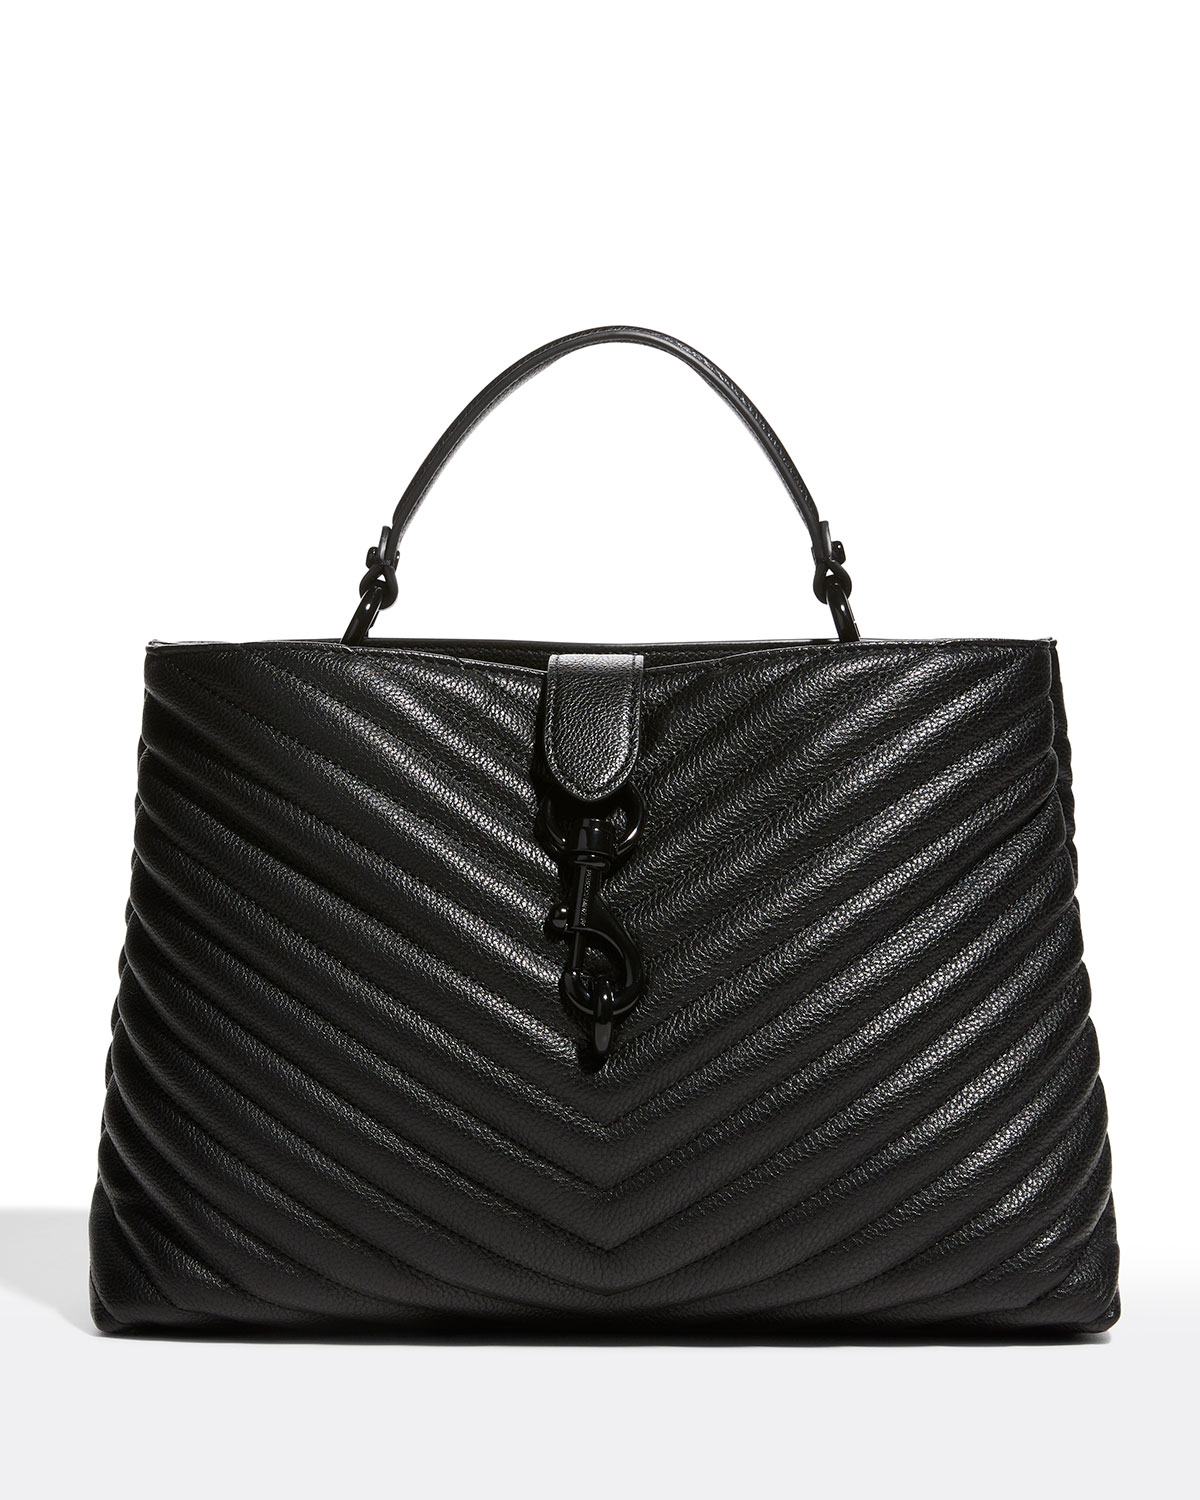 Rebecca Minkoff EDIE QUILTED LARGE TOP-HANDLE TOTE BAG